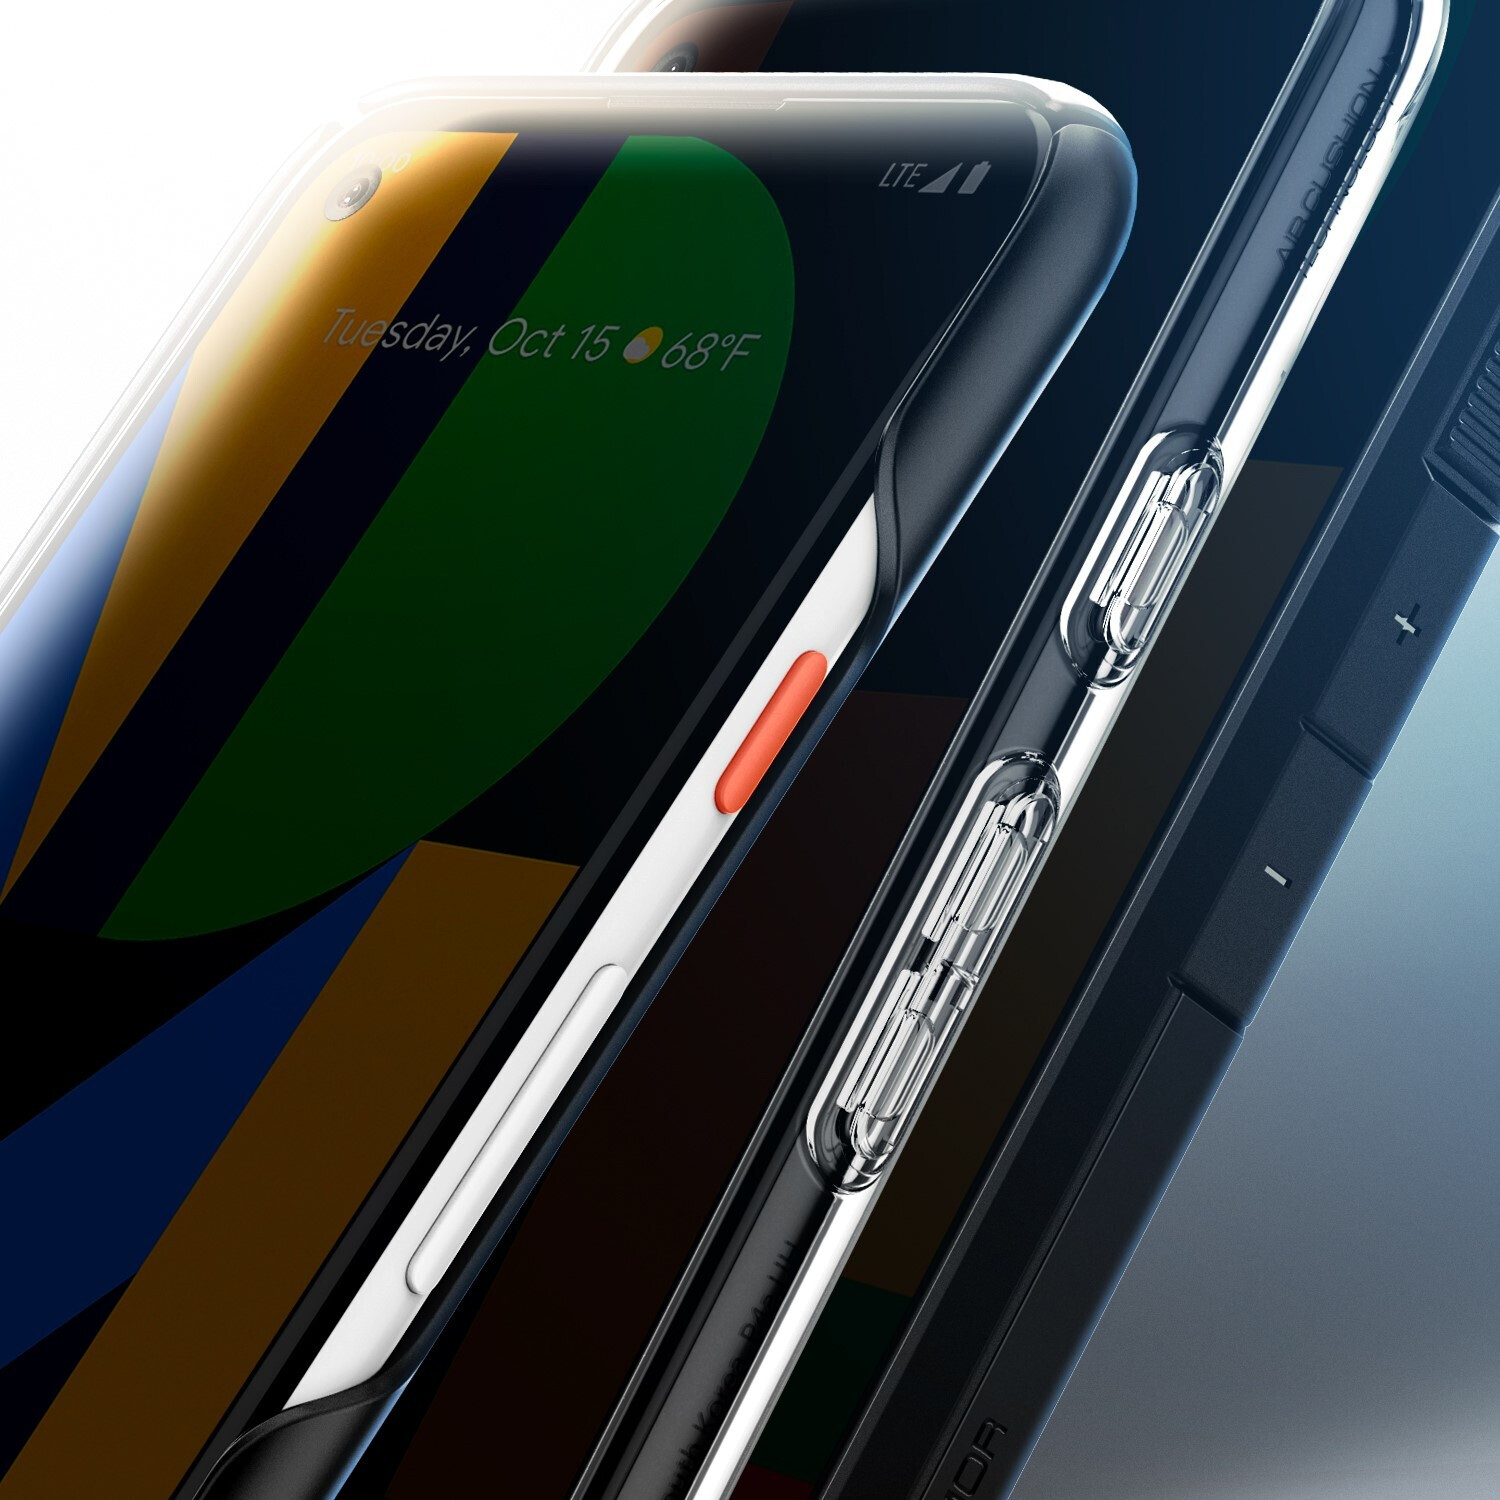 Pixel 4a image posted by Spigen - Case maker posts Pixel 4a image and... the game is on!